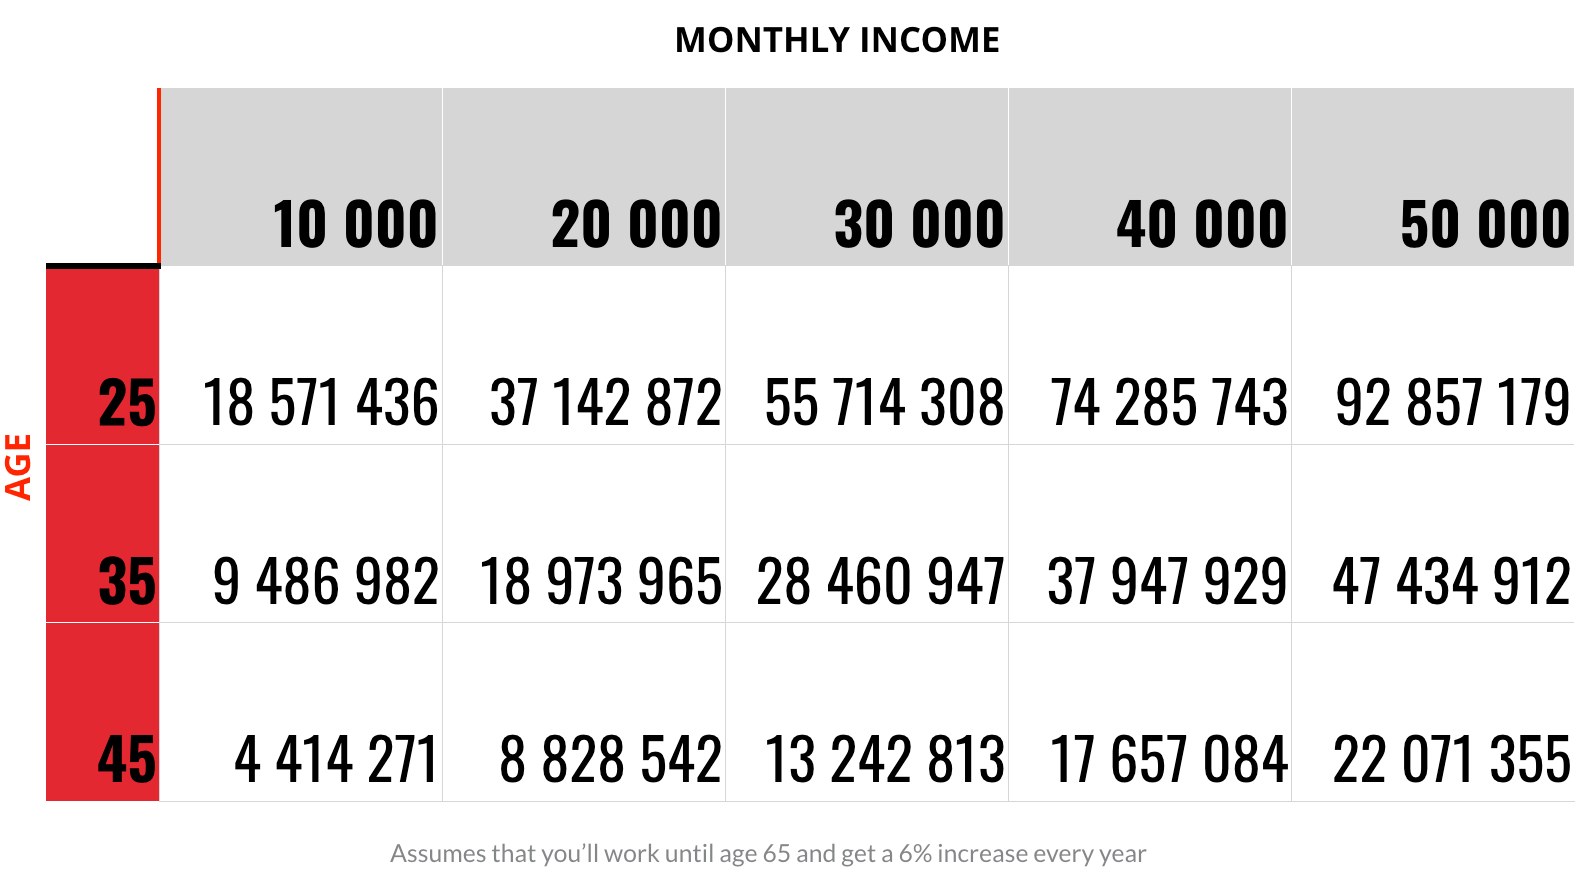 What might you earn over the rest of your lifetime?